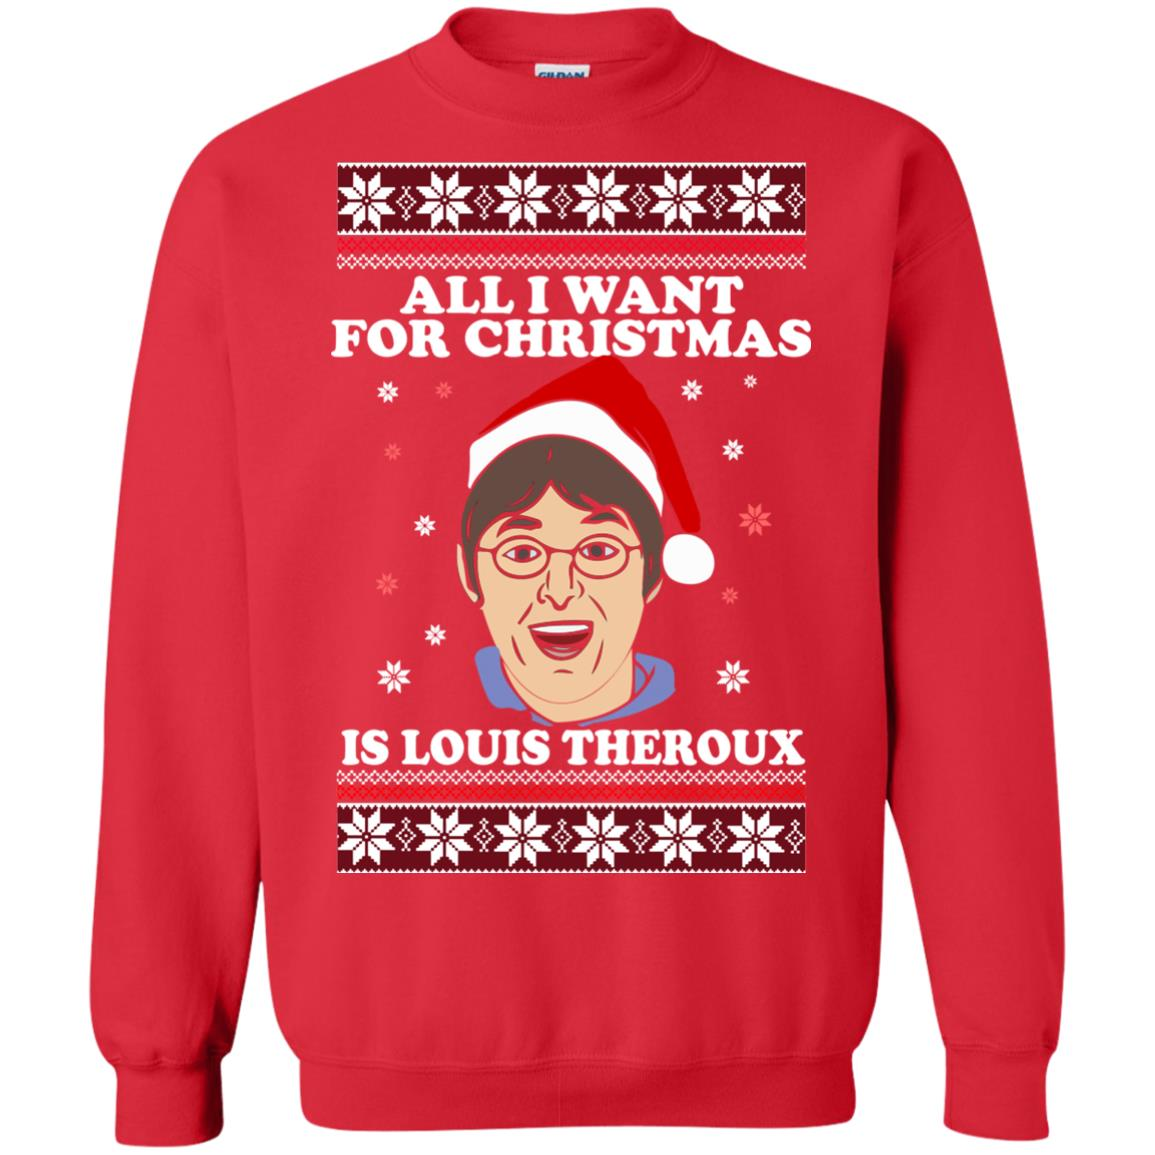 caecaa82ae51 All I Want For Christmas is Louis Theroux Sweater, Shirt, Hoodie - image 873